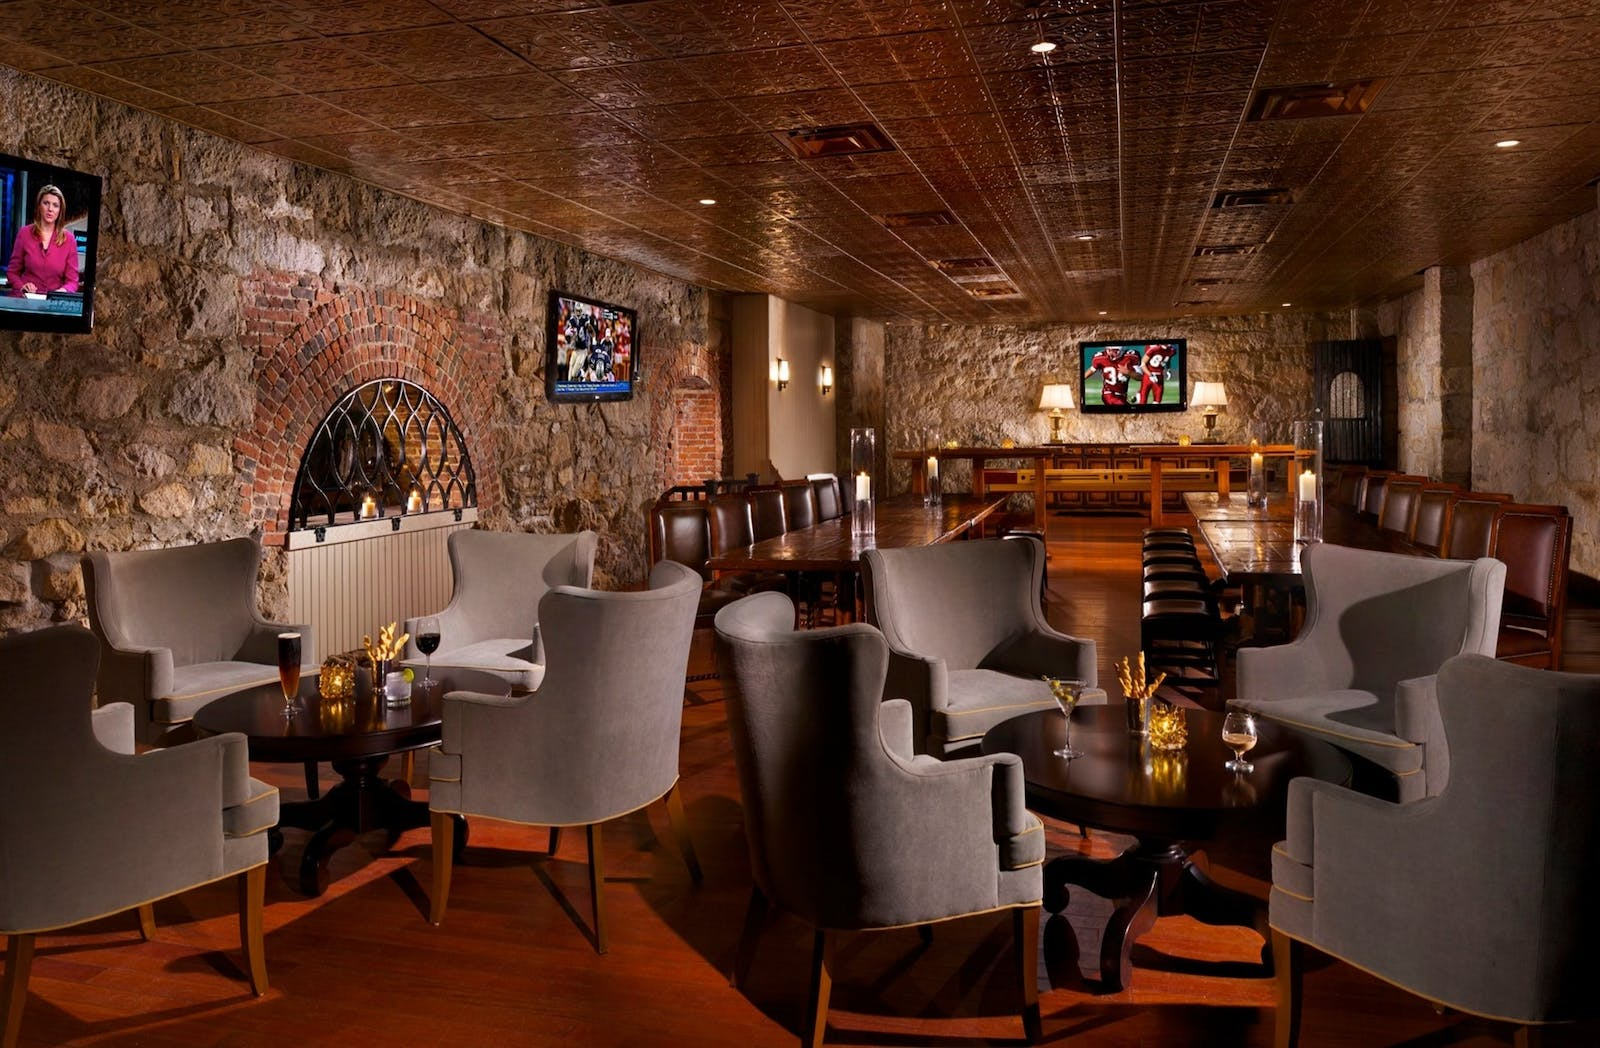 The Cave Lounge at Omni Mount Washington Resort